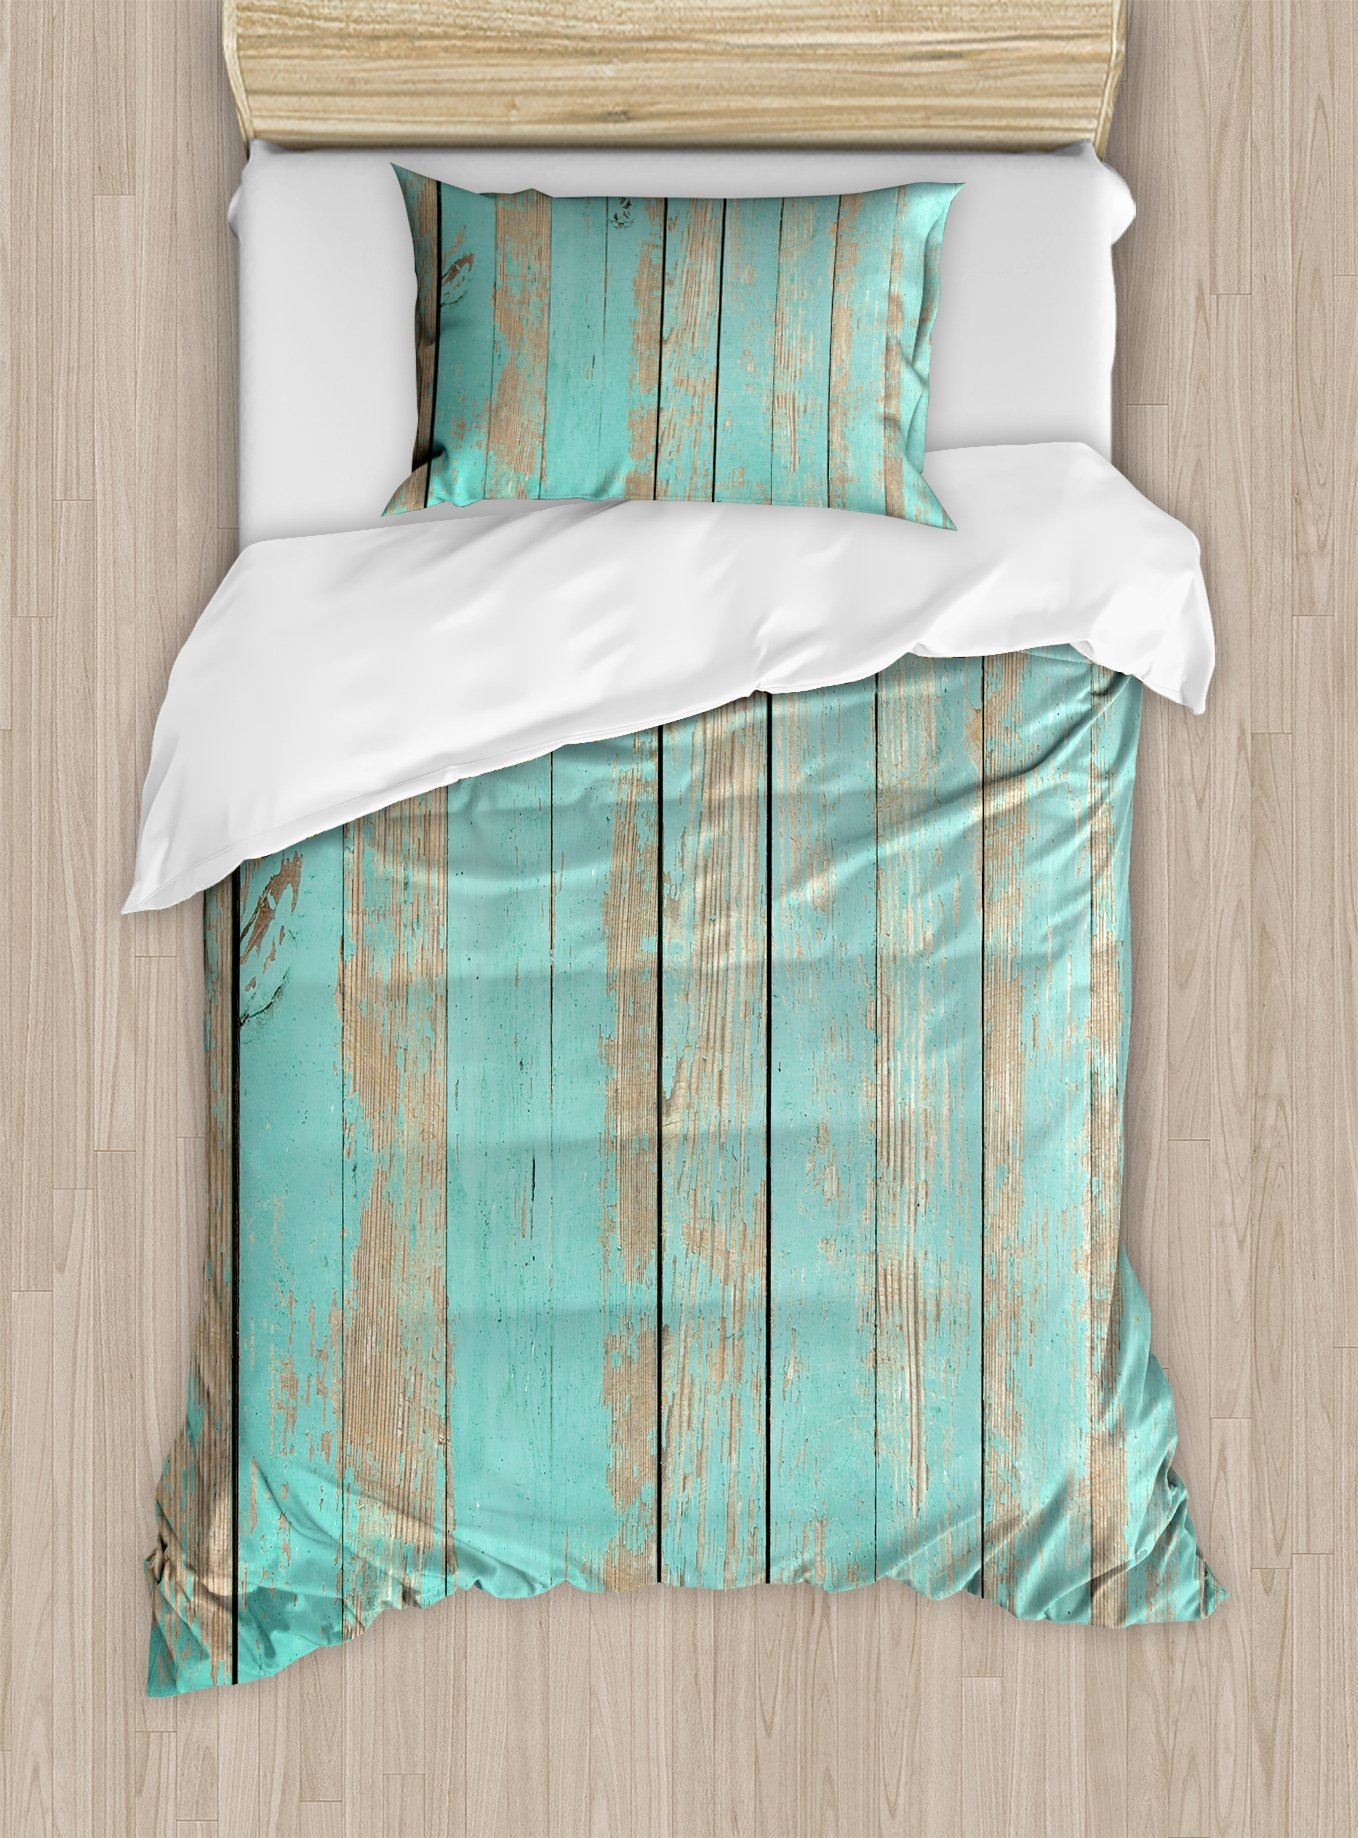 Lunarable Aqua Duvet Cover Set Twin Size, Worn Out Wooden Planks Faded Paint Marks Vintage Grunge Hardwood Image Rustic Design, Decorative 2 Piece Bedding Set with 1 Pillow Sham, Aqua Tan